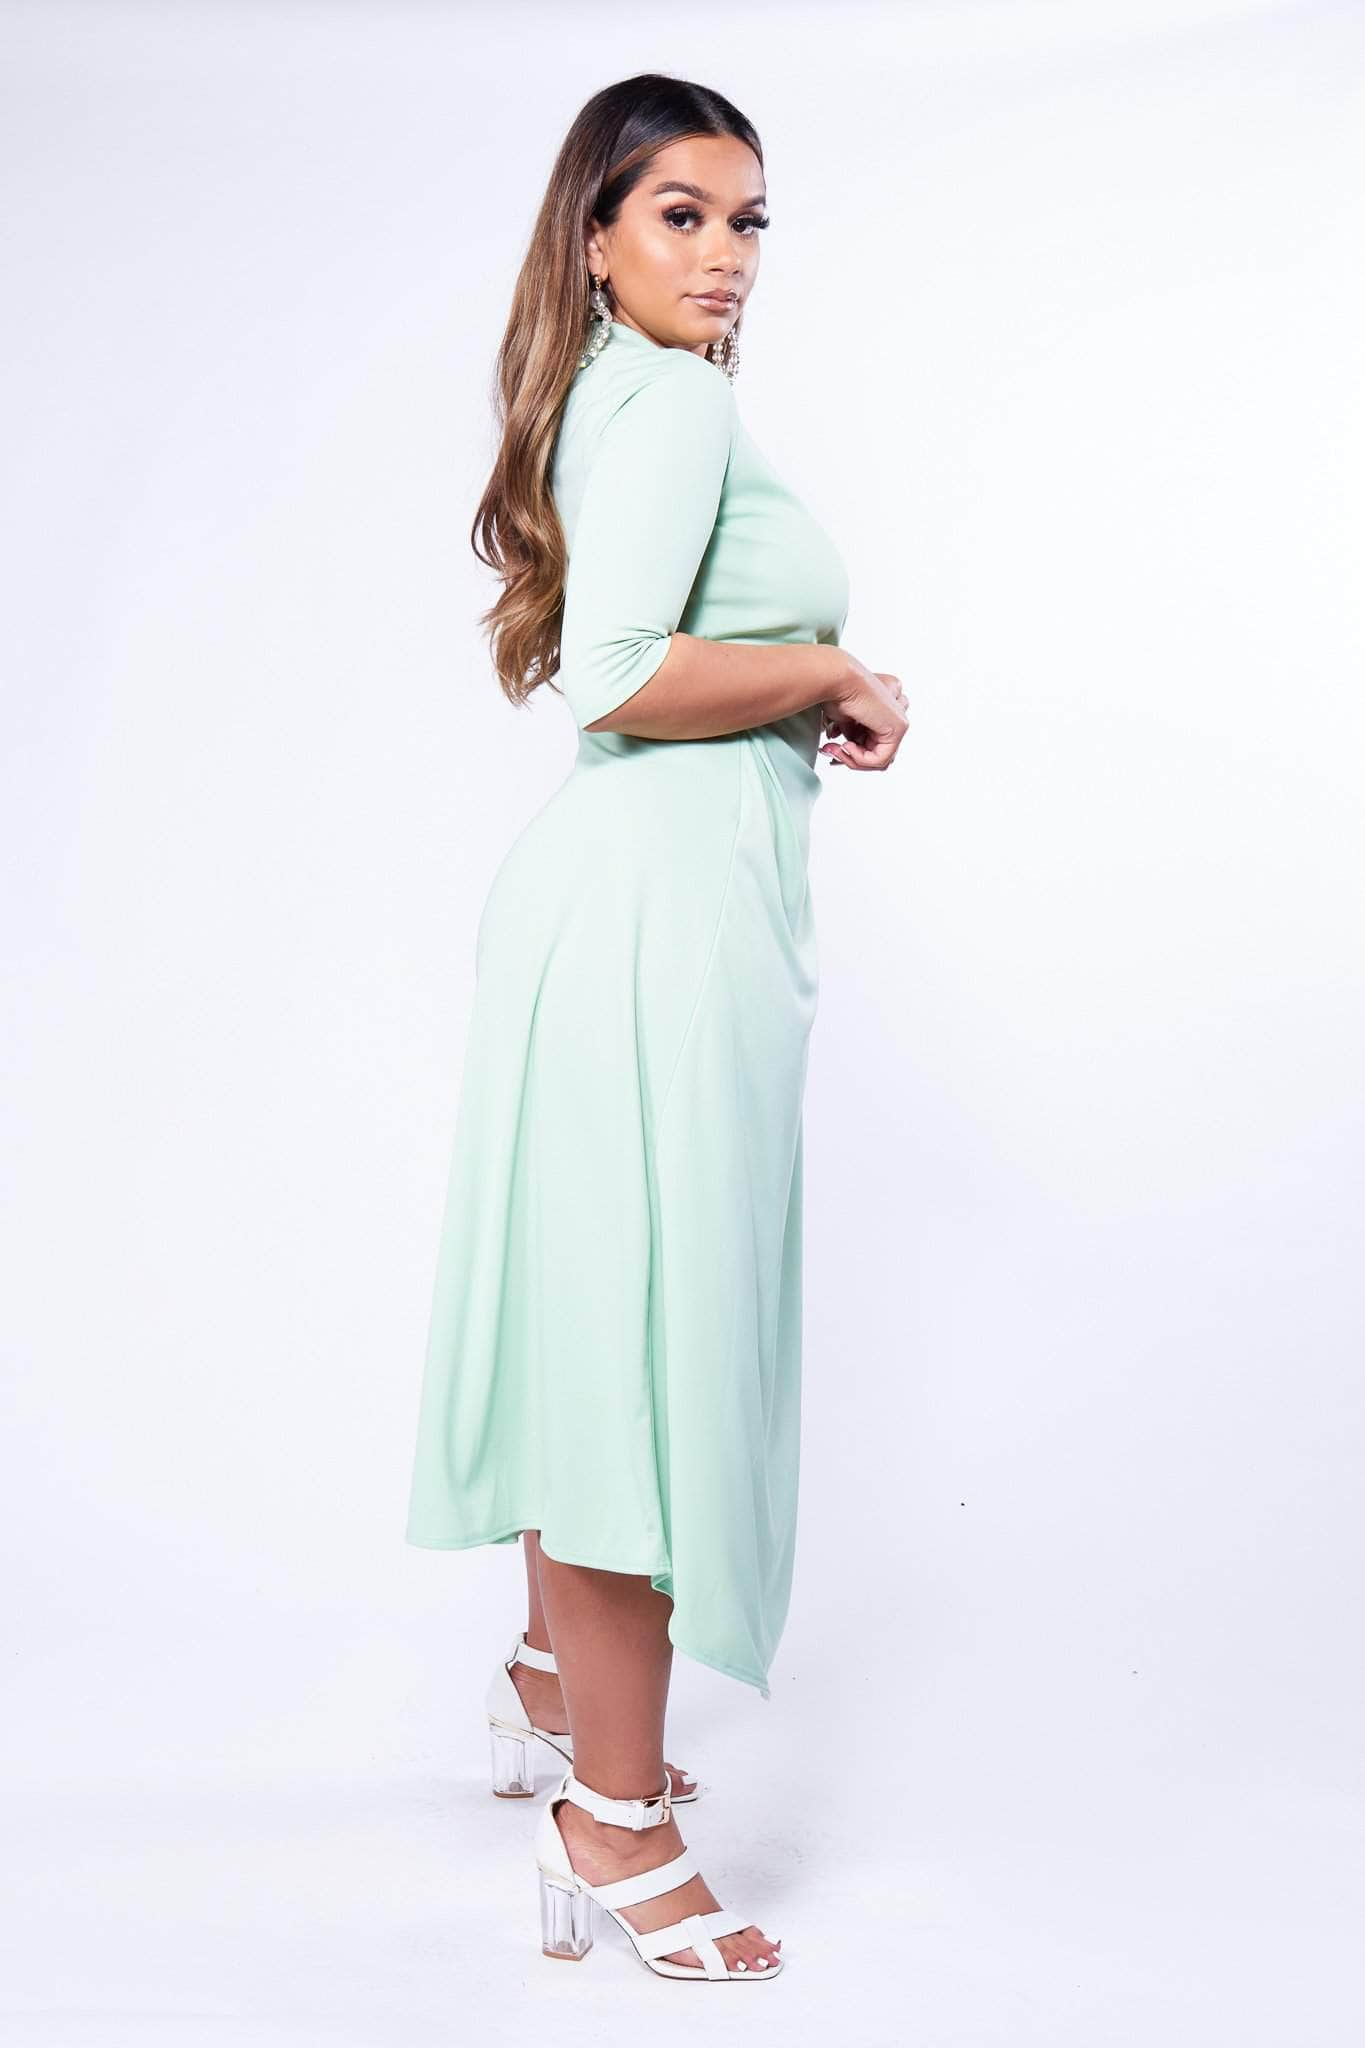 Mint Green Wrap Dress with Gold Safety Pin Clasp-Dresses-Hidden Fashion